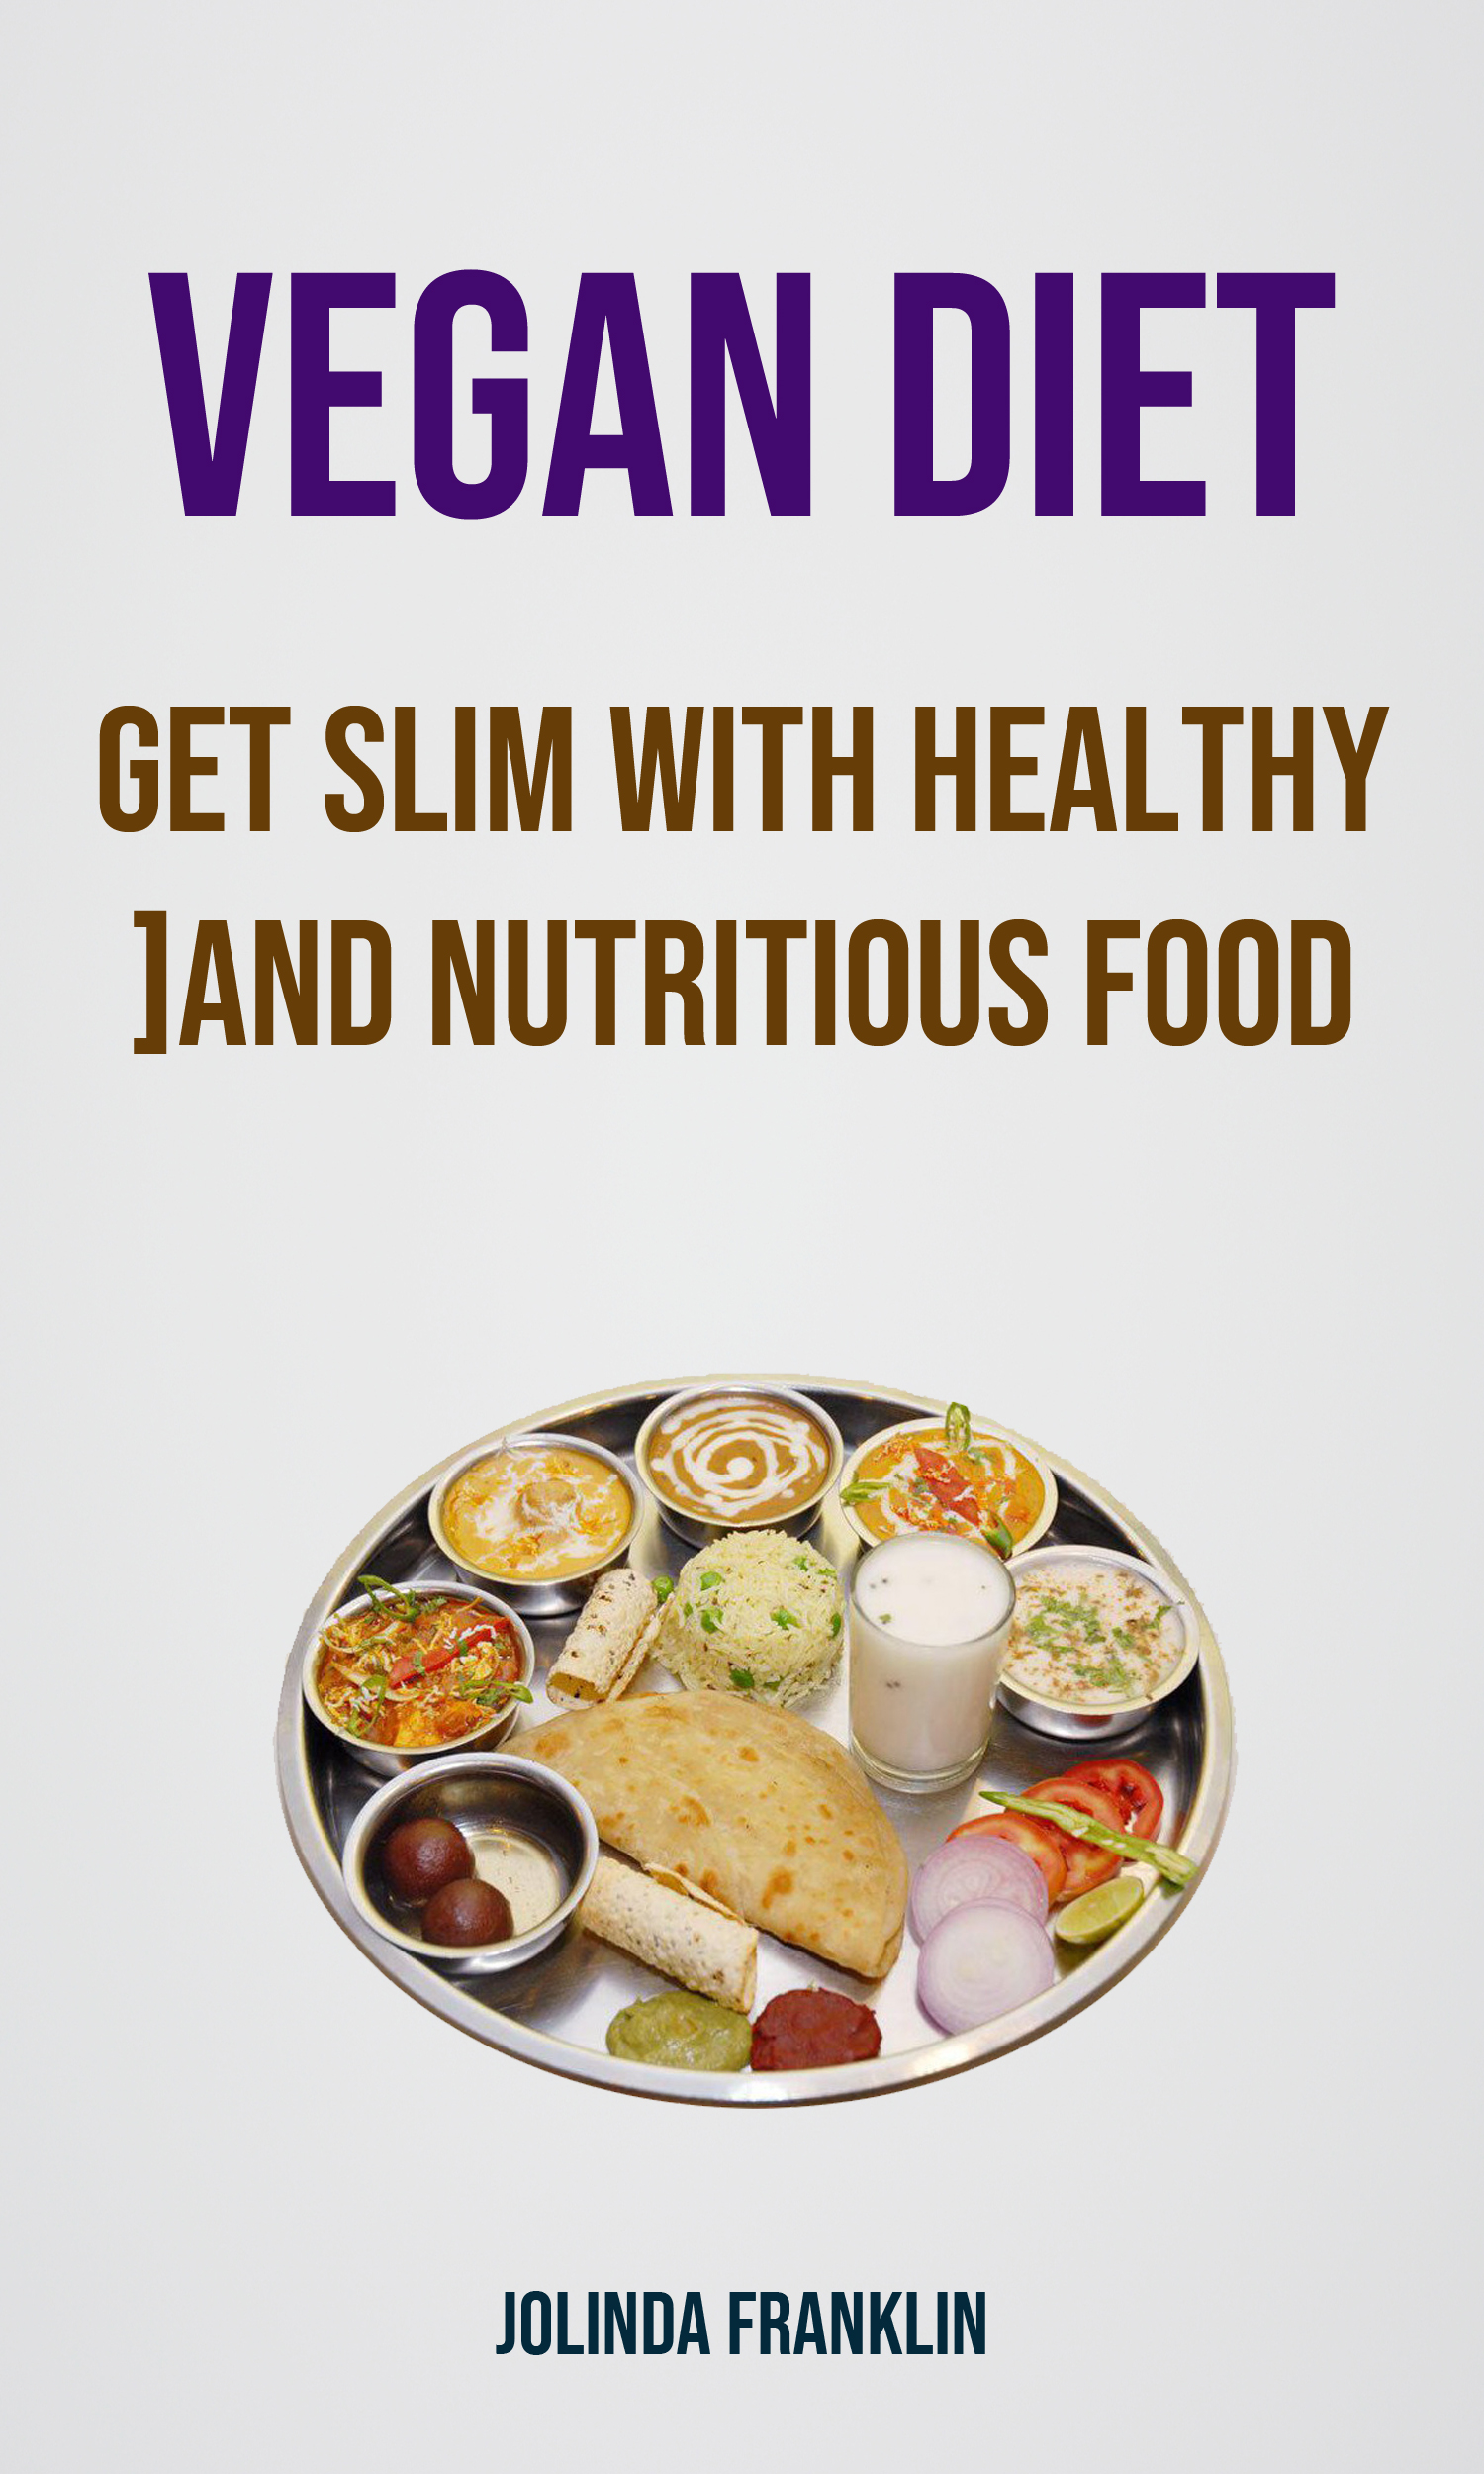 Vegan diet: get slim with healthy and nutritious food